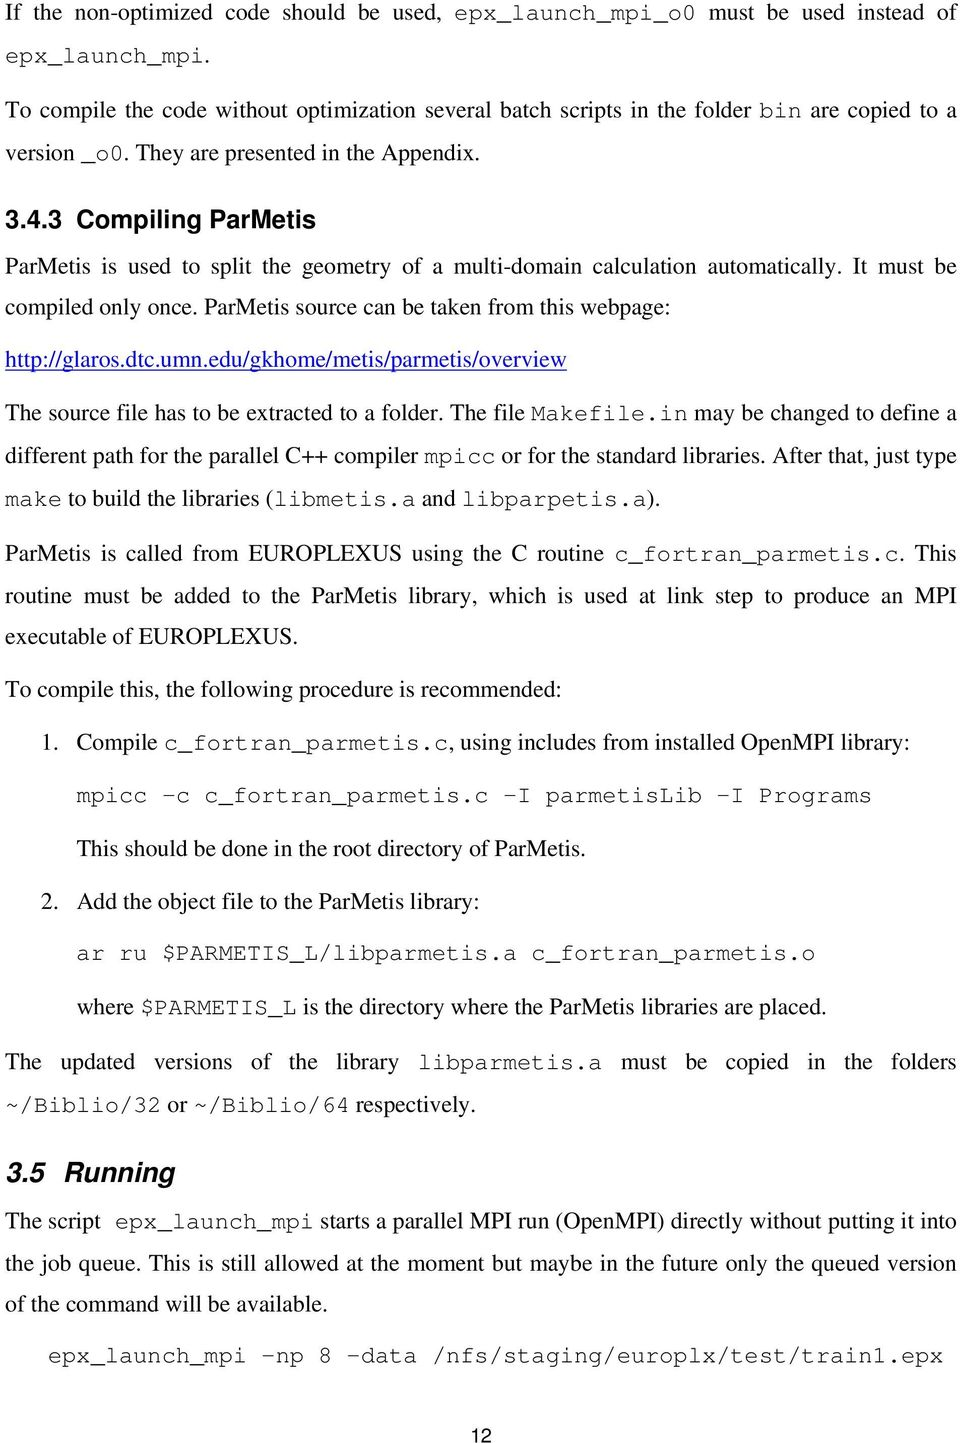 3 Compiling ParMetis ParMetis is used to split the geometry of a multi-domain calculation automatically. It must be compiled only once. ParMetis source can be taken from this webpage: http://glaros.